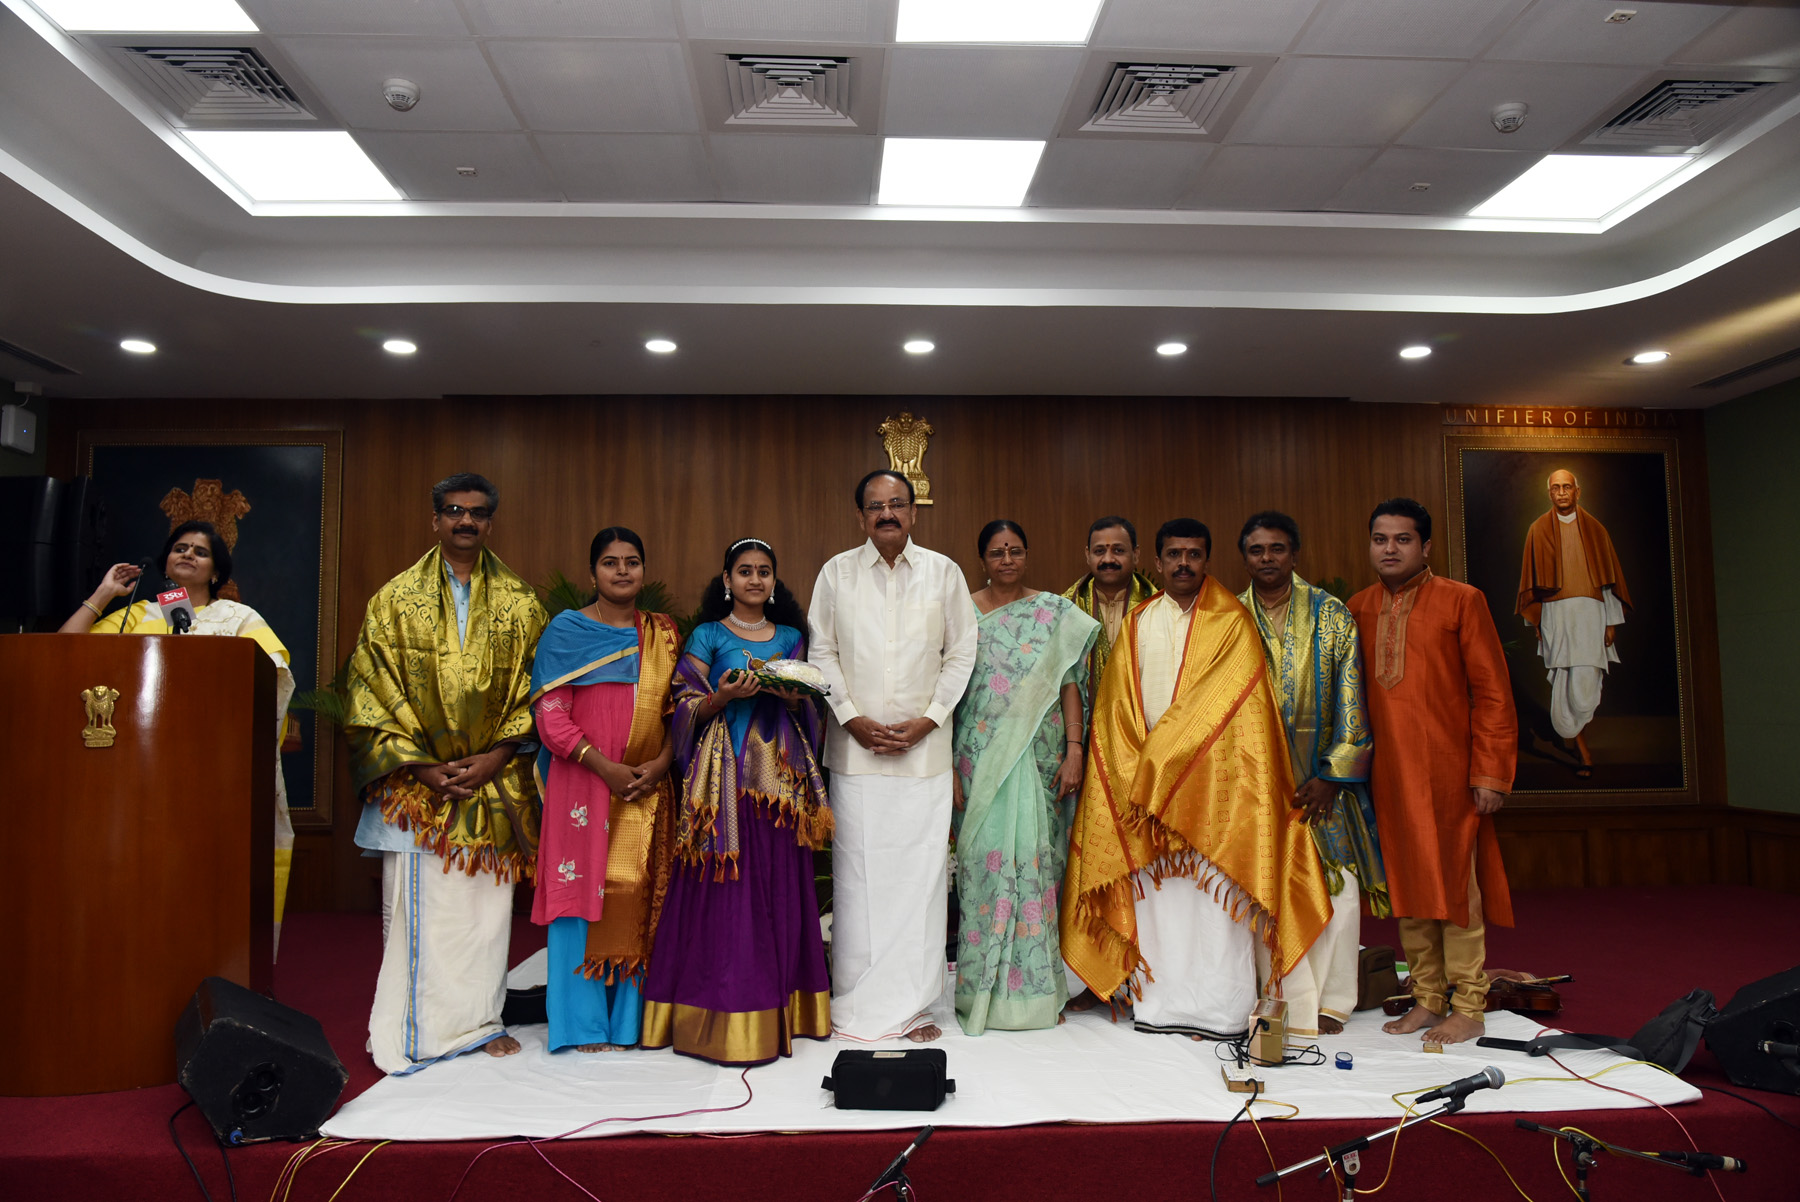 The Vice President, Shri M. Venkaiah Naidu and Smt. Usha Naidu with Vocalist, Ms. Sooryagayathri and the accompanying artistes after the Classical Bhajan Concert, in New Delhi on September 09, 2019.